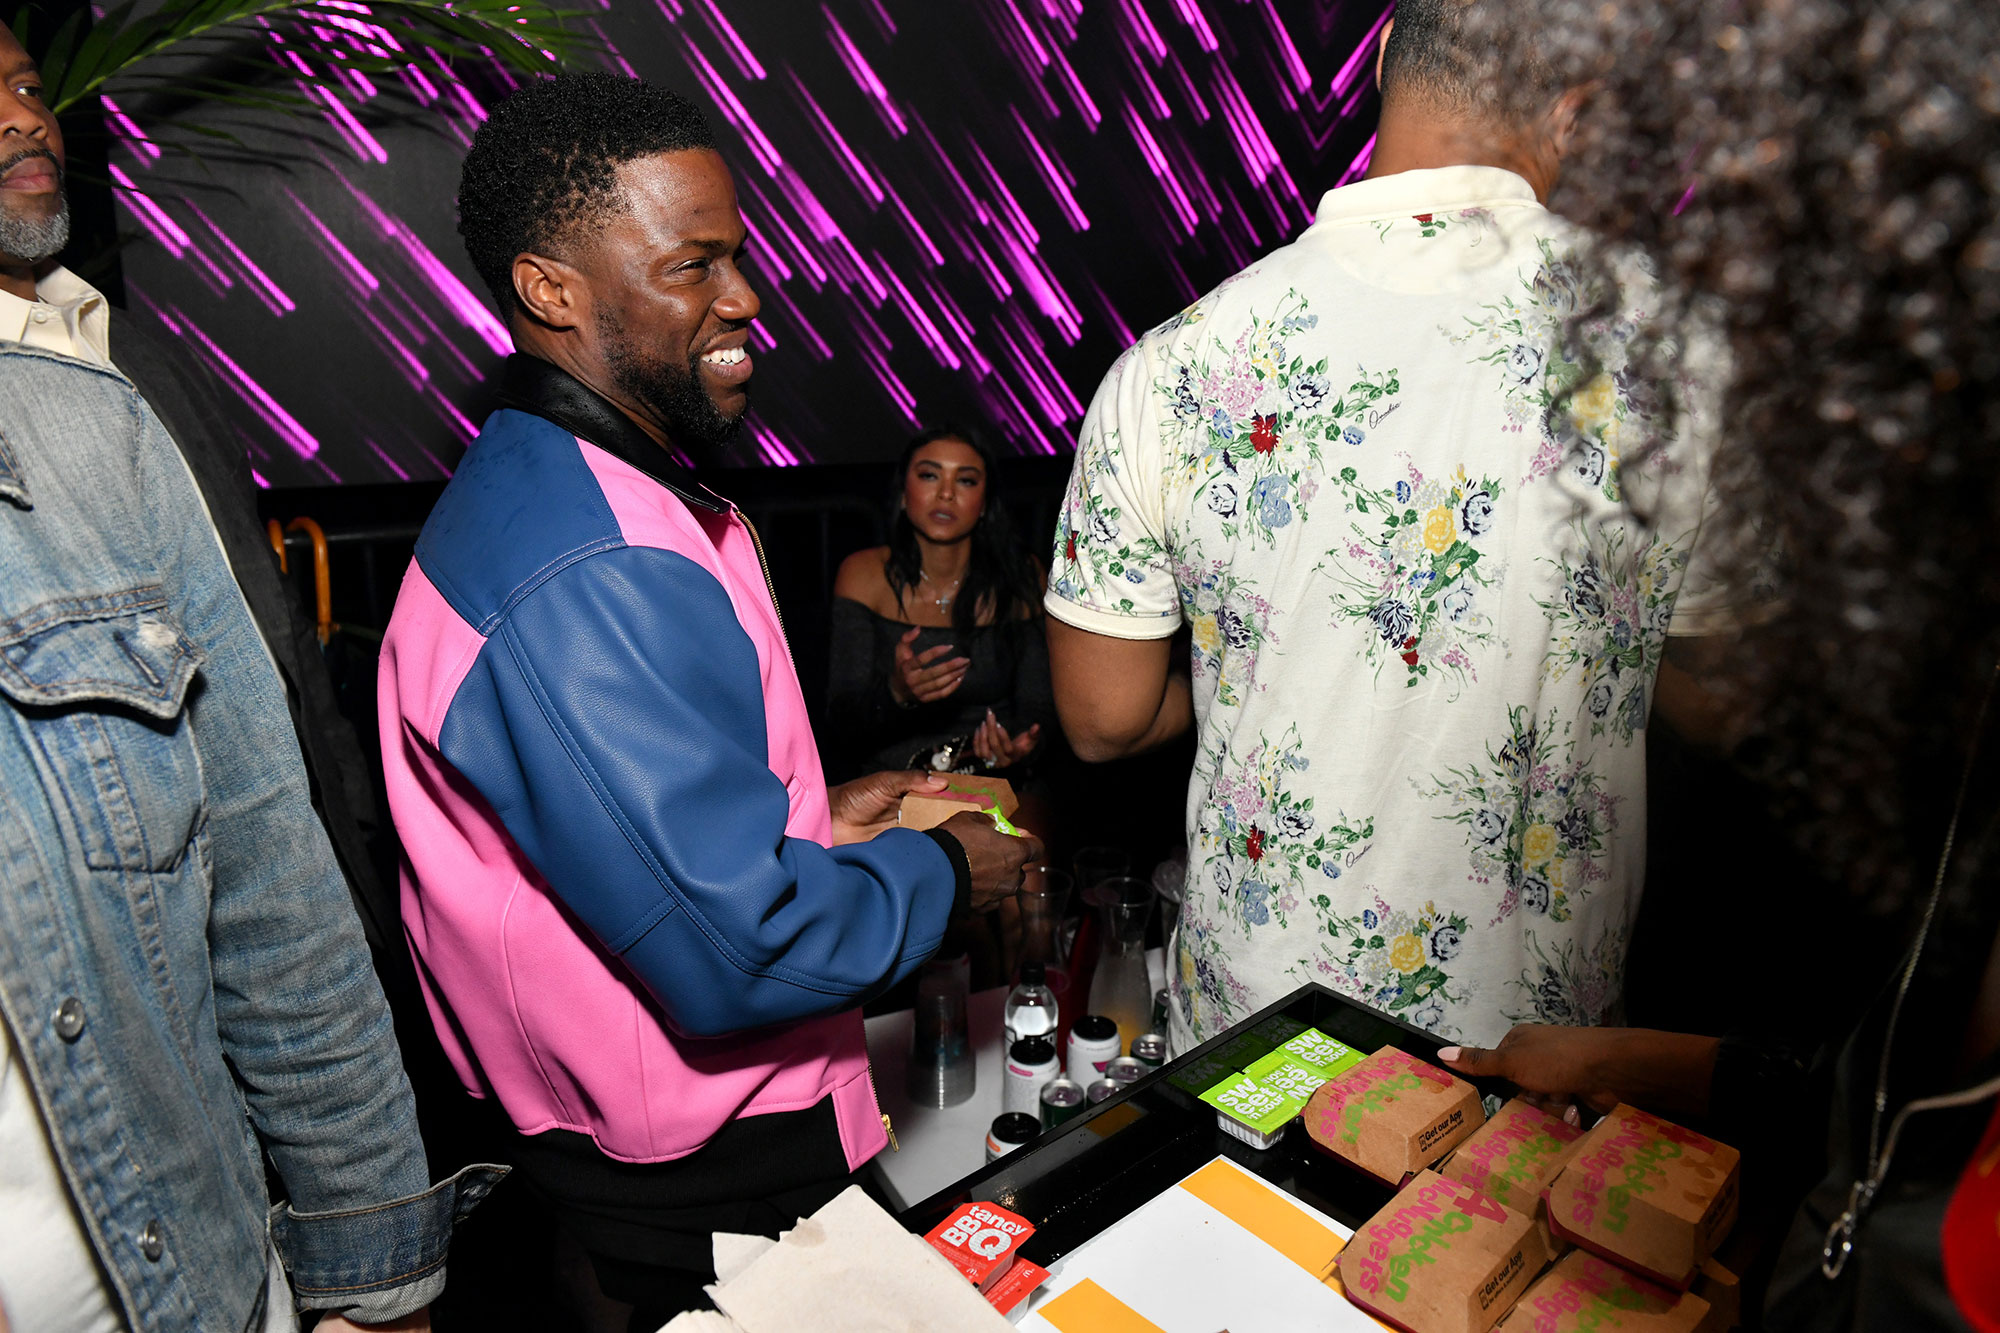 McDonald's Celebrates The Big Game Weekend with Bootsy Bellows and Post Malone